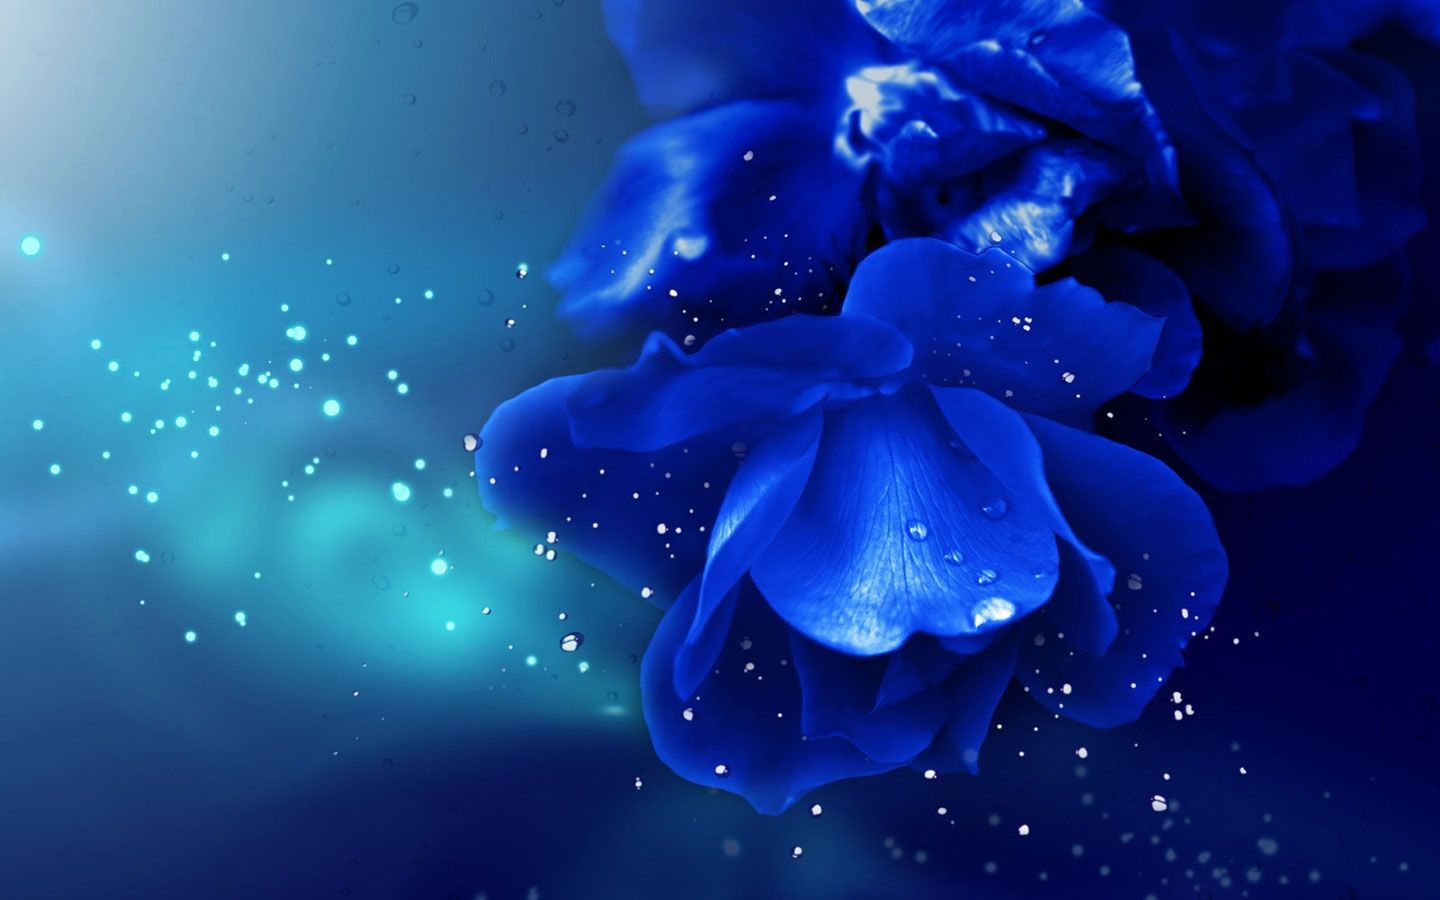 Royal Blue Flowers HD Wallpapers - Top Free Royal Blue ...